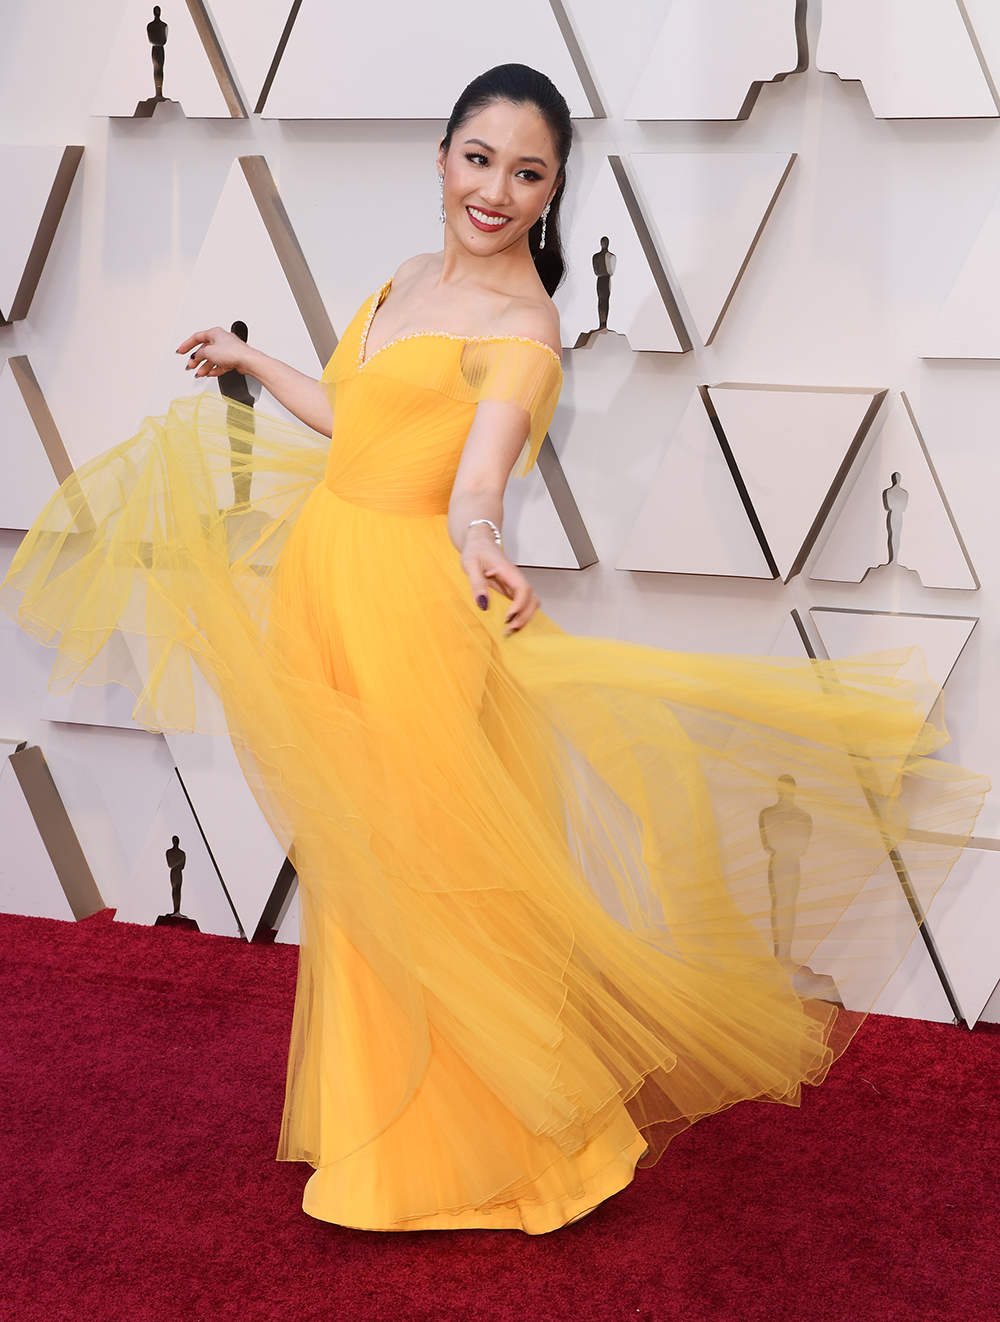 sonstance-wu-oscars-red-carpet-2019.jpg